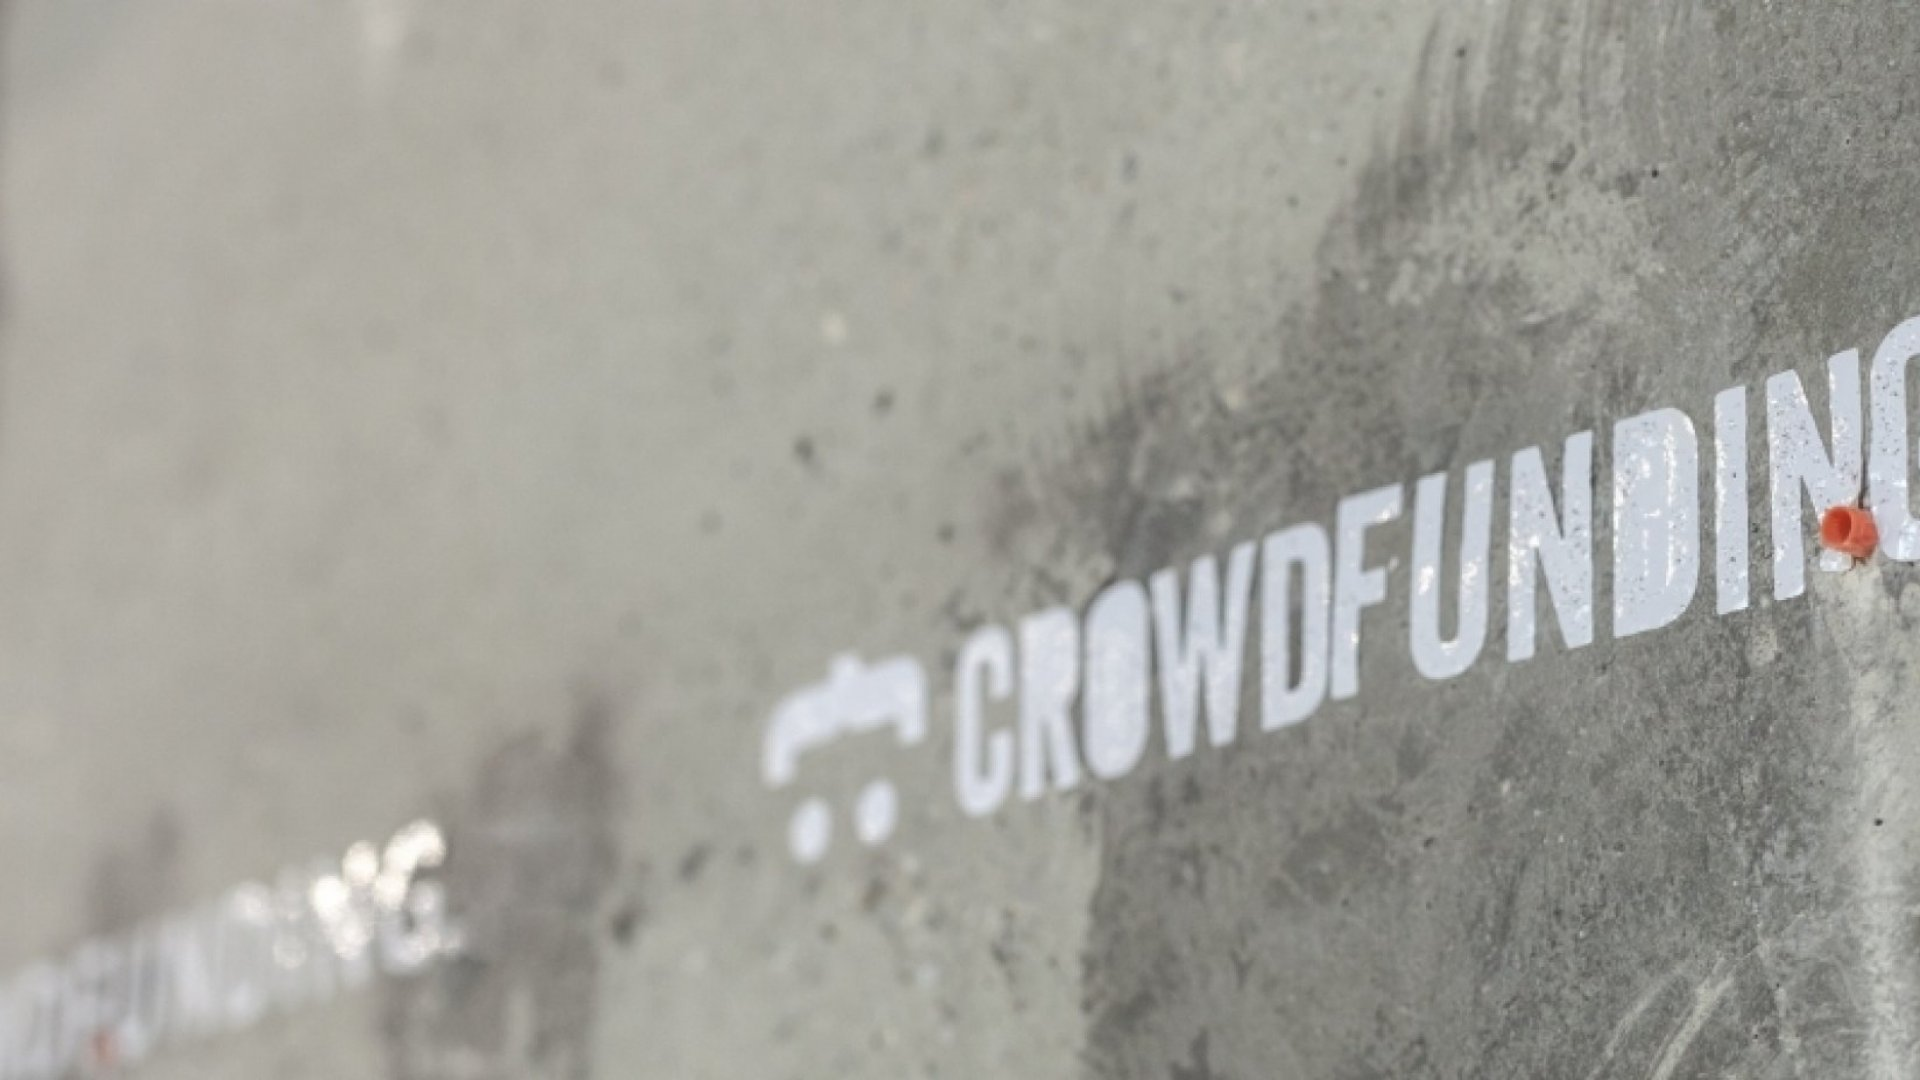 Loan vs. Crowdfund: Which Is the Best Option for Funding?